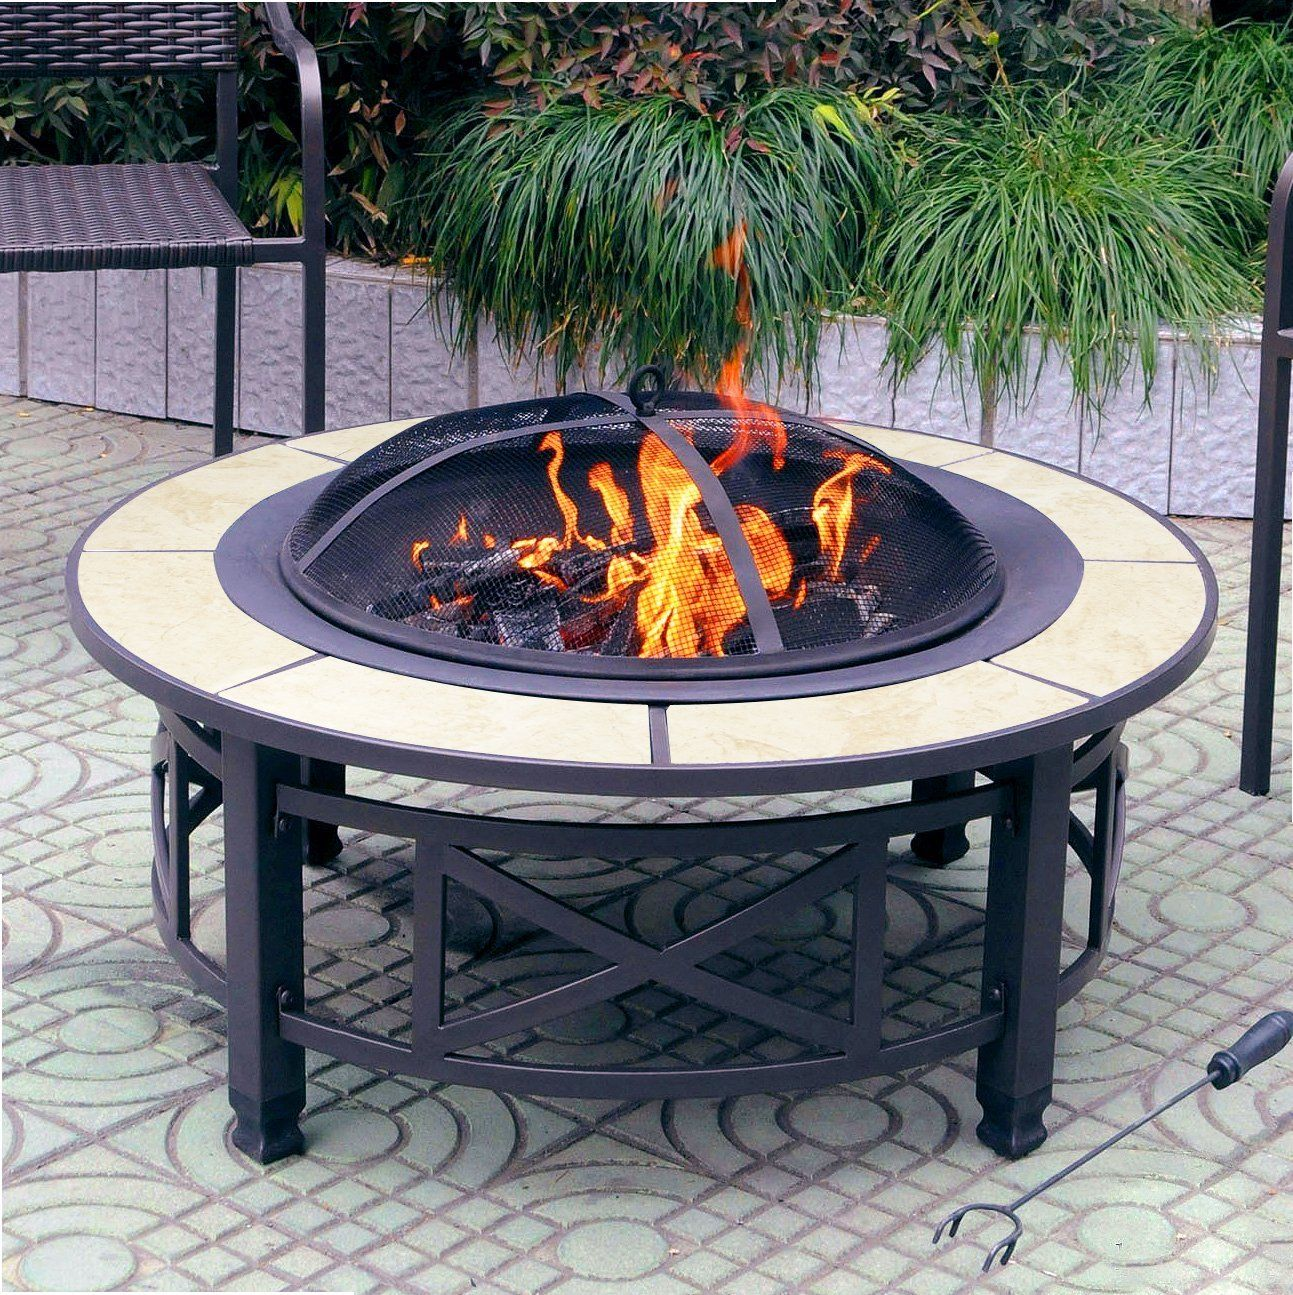 Garden Furniture With Fire Pit Uk centurion supports nusku luxurious and premium multi-functional